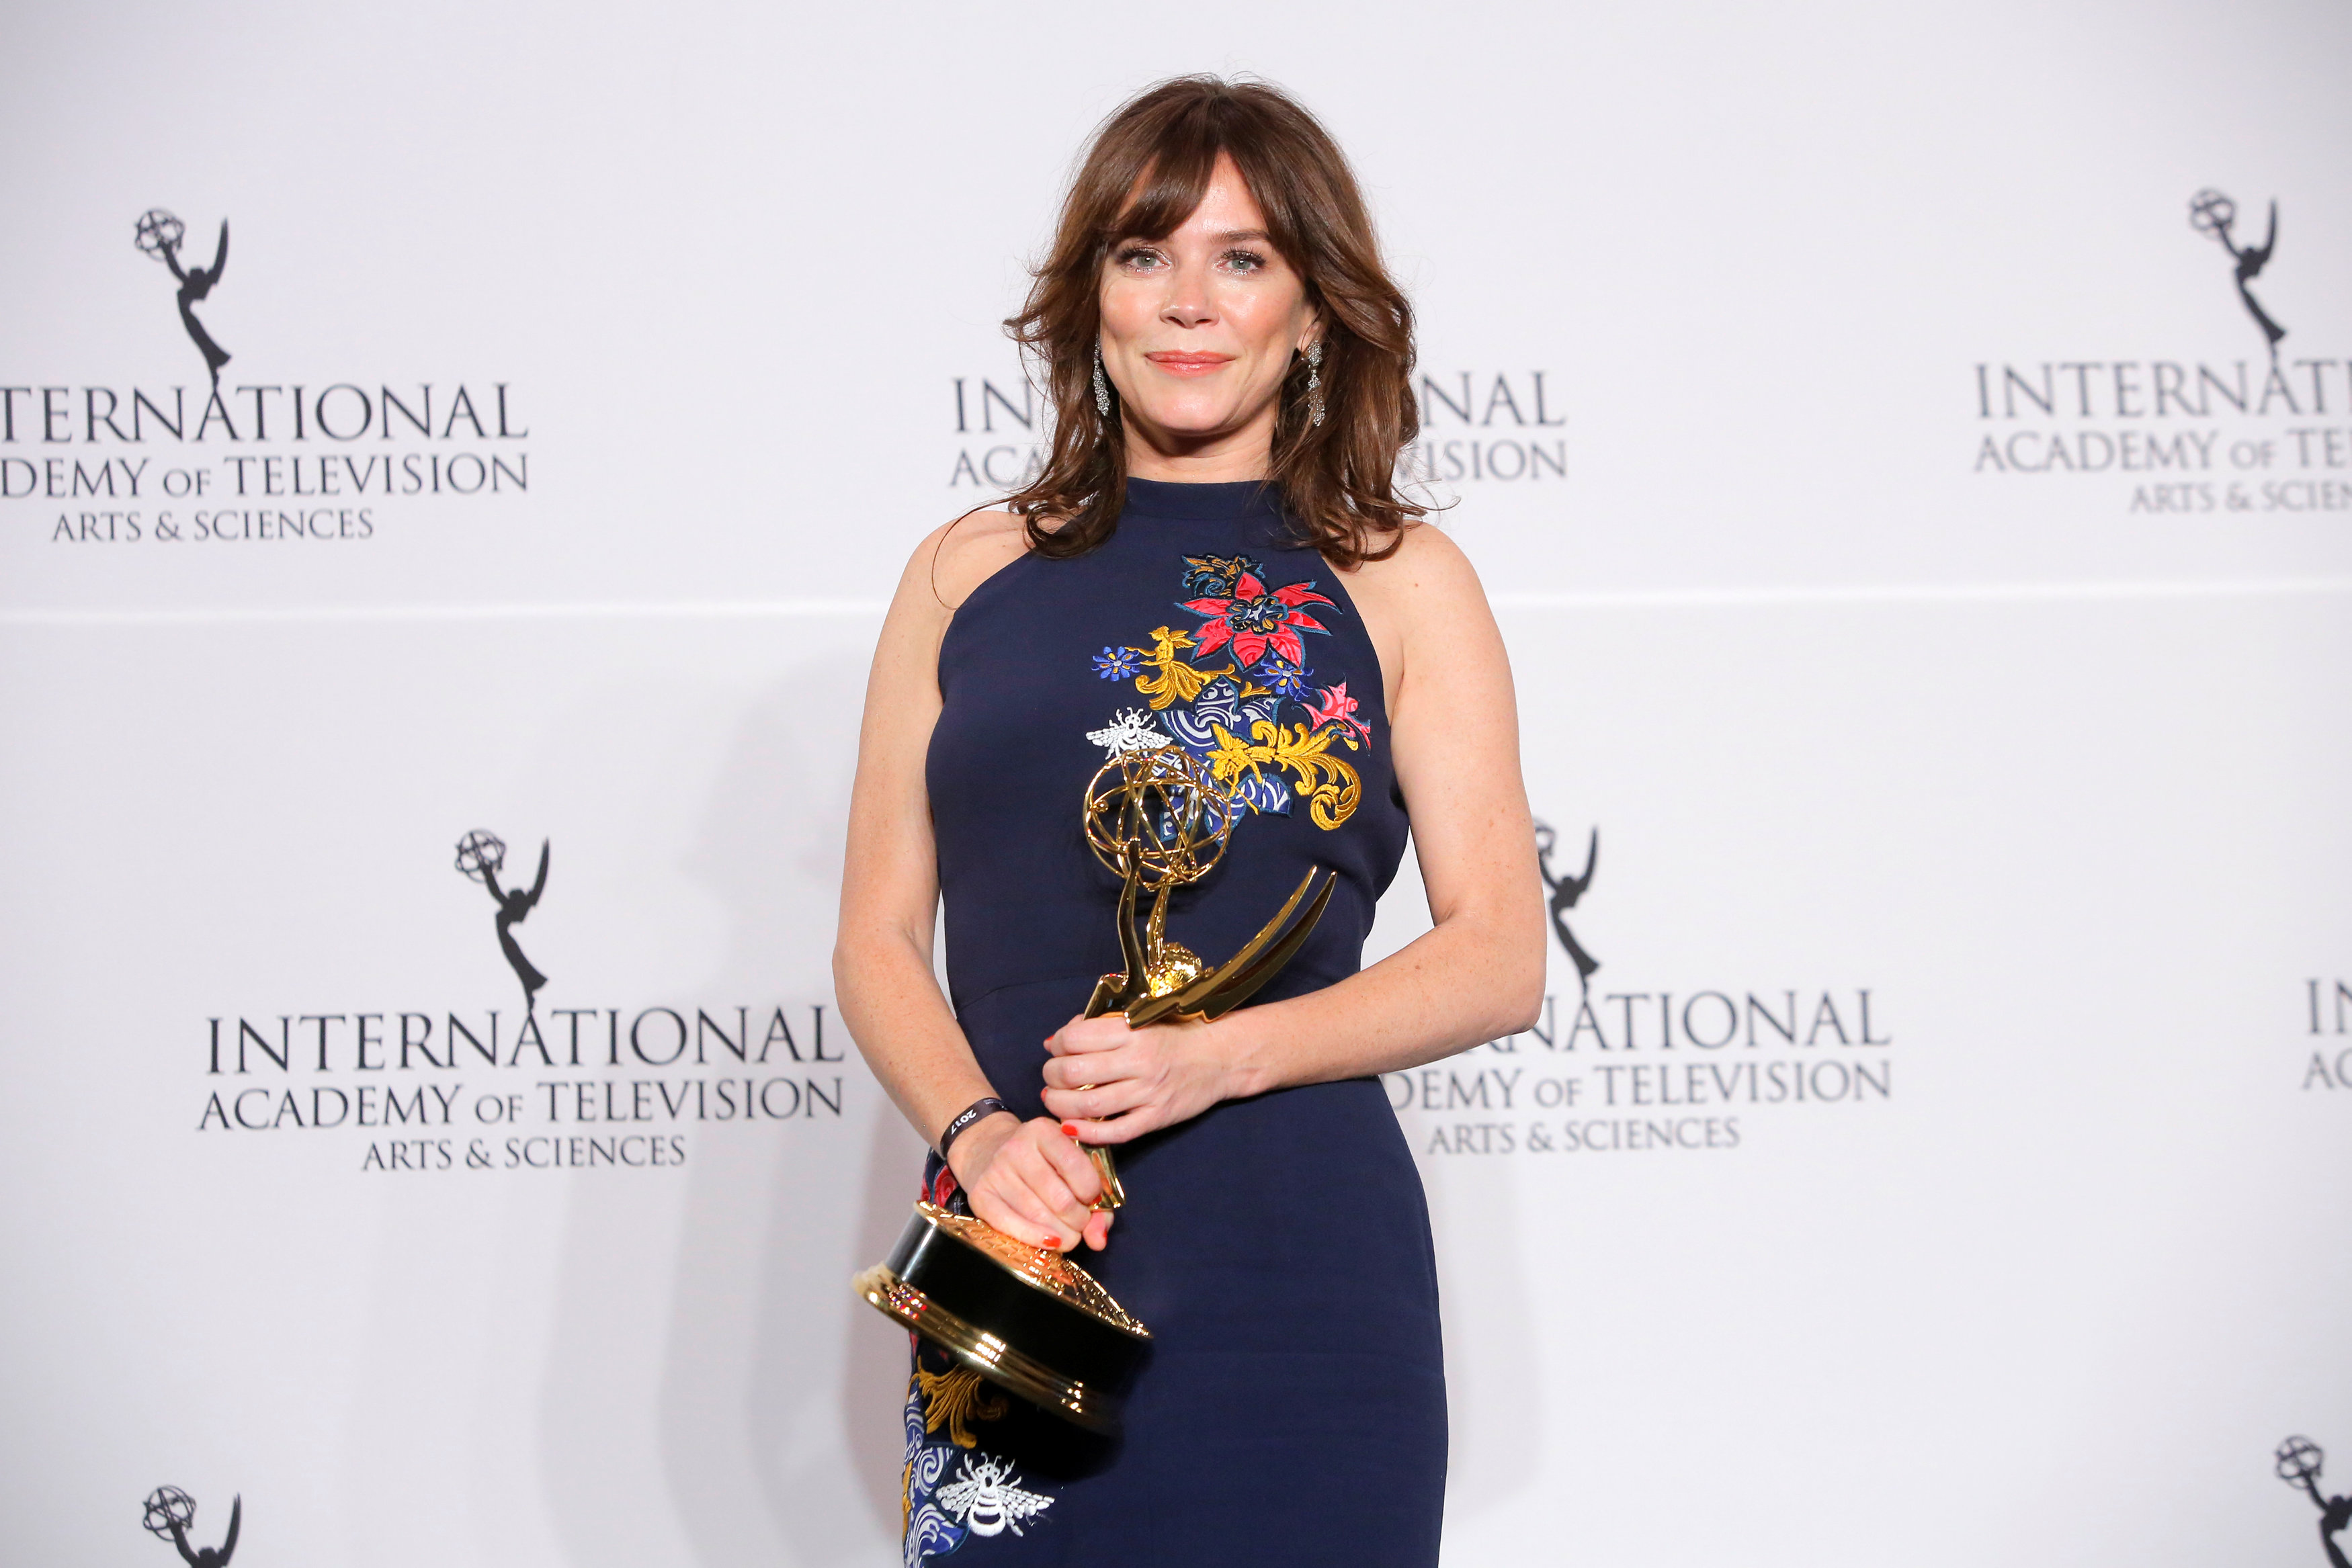 Anna Friel celebrates winning her International Emmy Award for best performance by an actress in 'Marcella' in Manhattan, New York, November 20, 2017. — Reuters pic